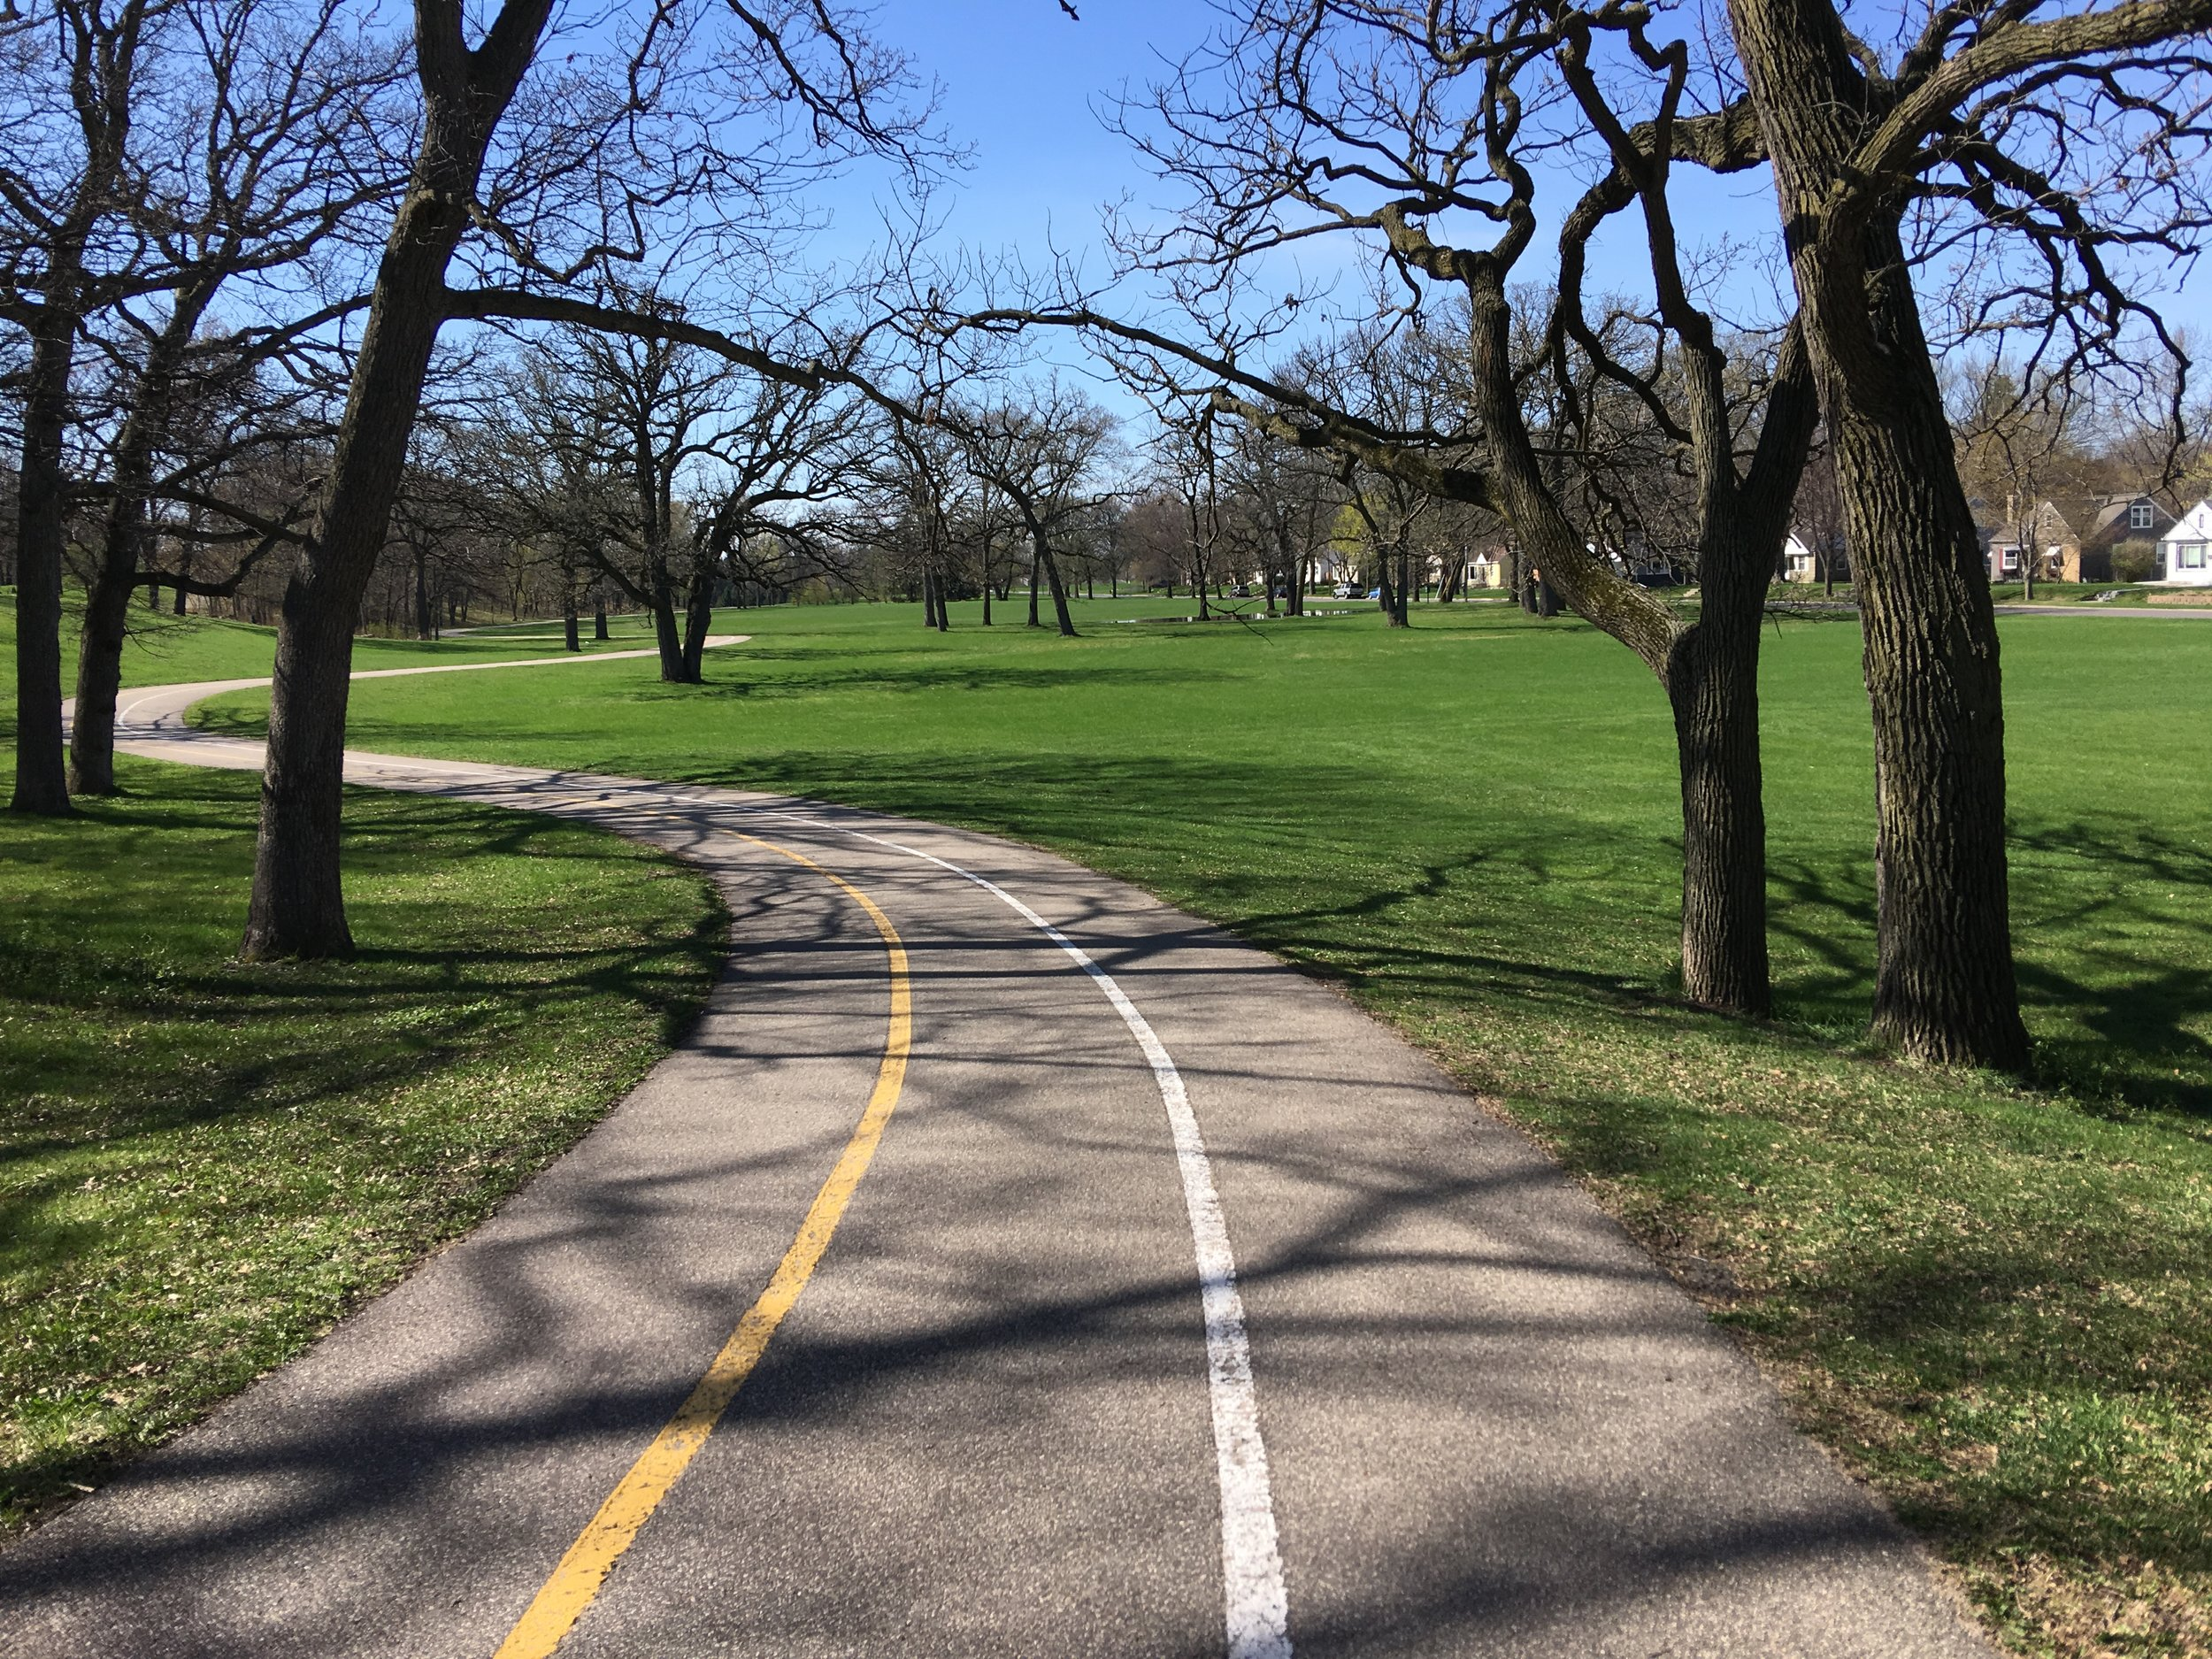 Part of the Grand Rounds park system that runs through North Minneapolis